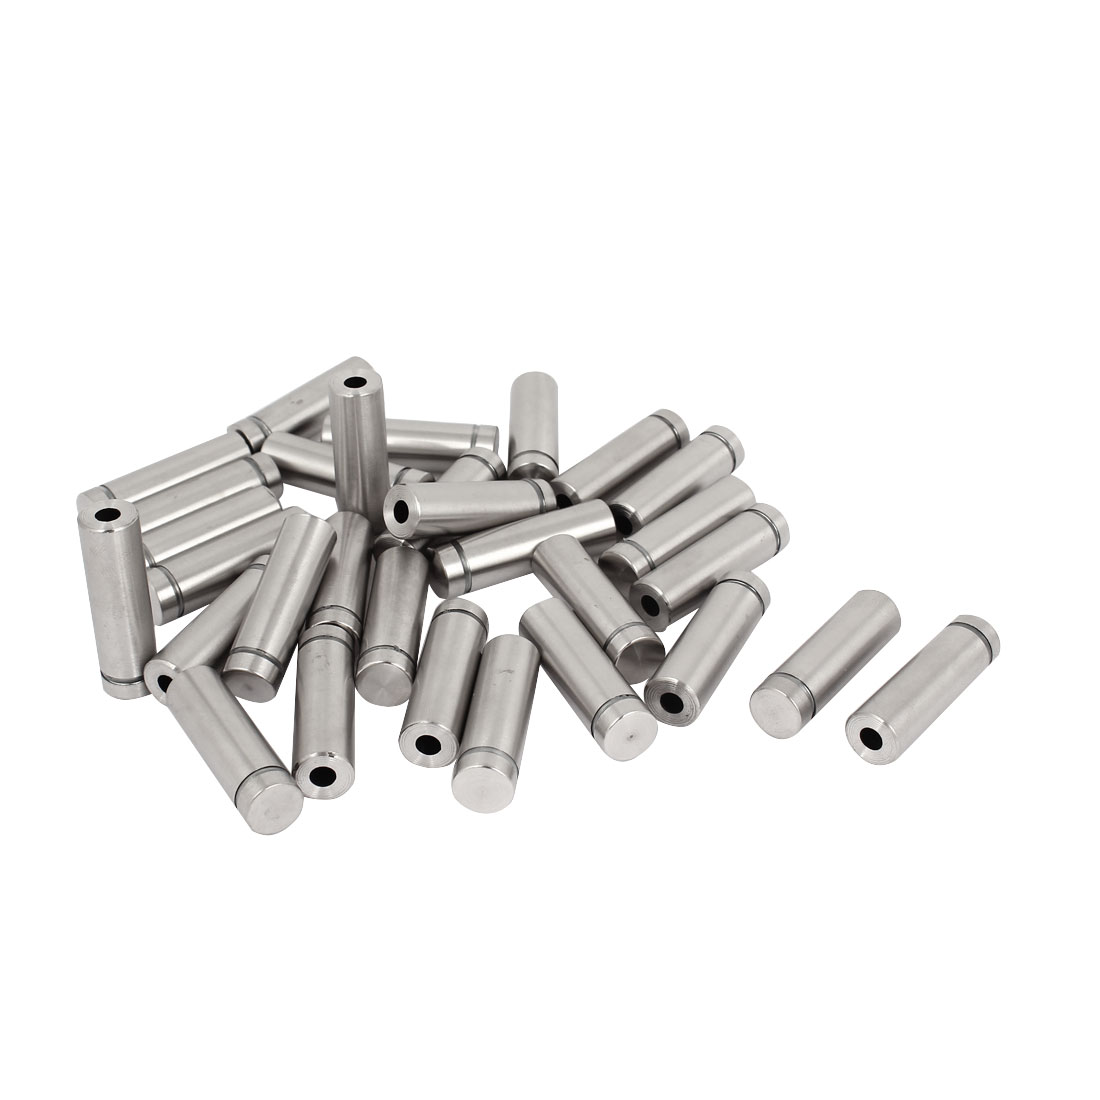 30 Pcs 12mm x 40mm Advertisement Barrel Nails Screws Glass Standoff Pins Holder